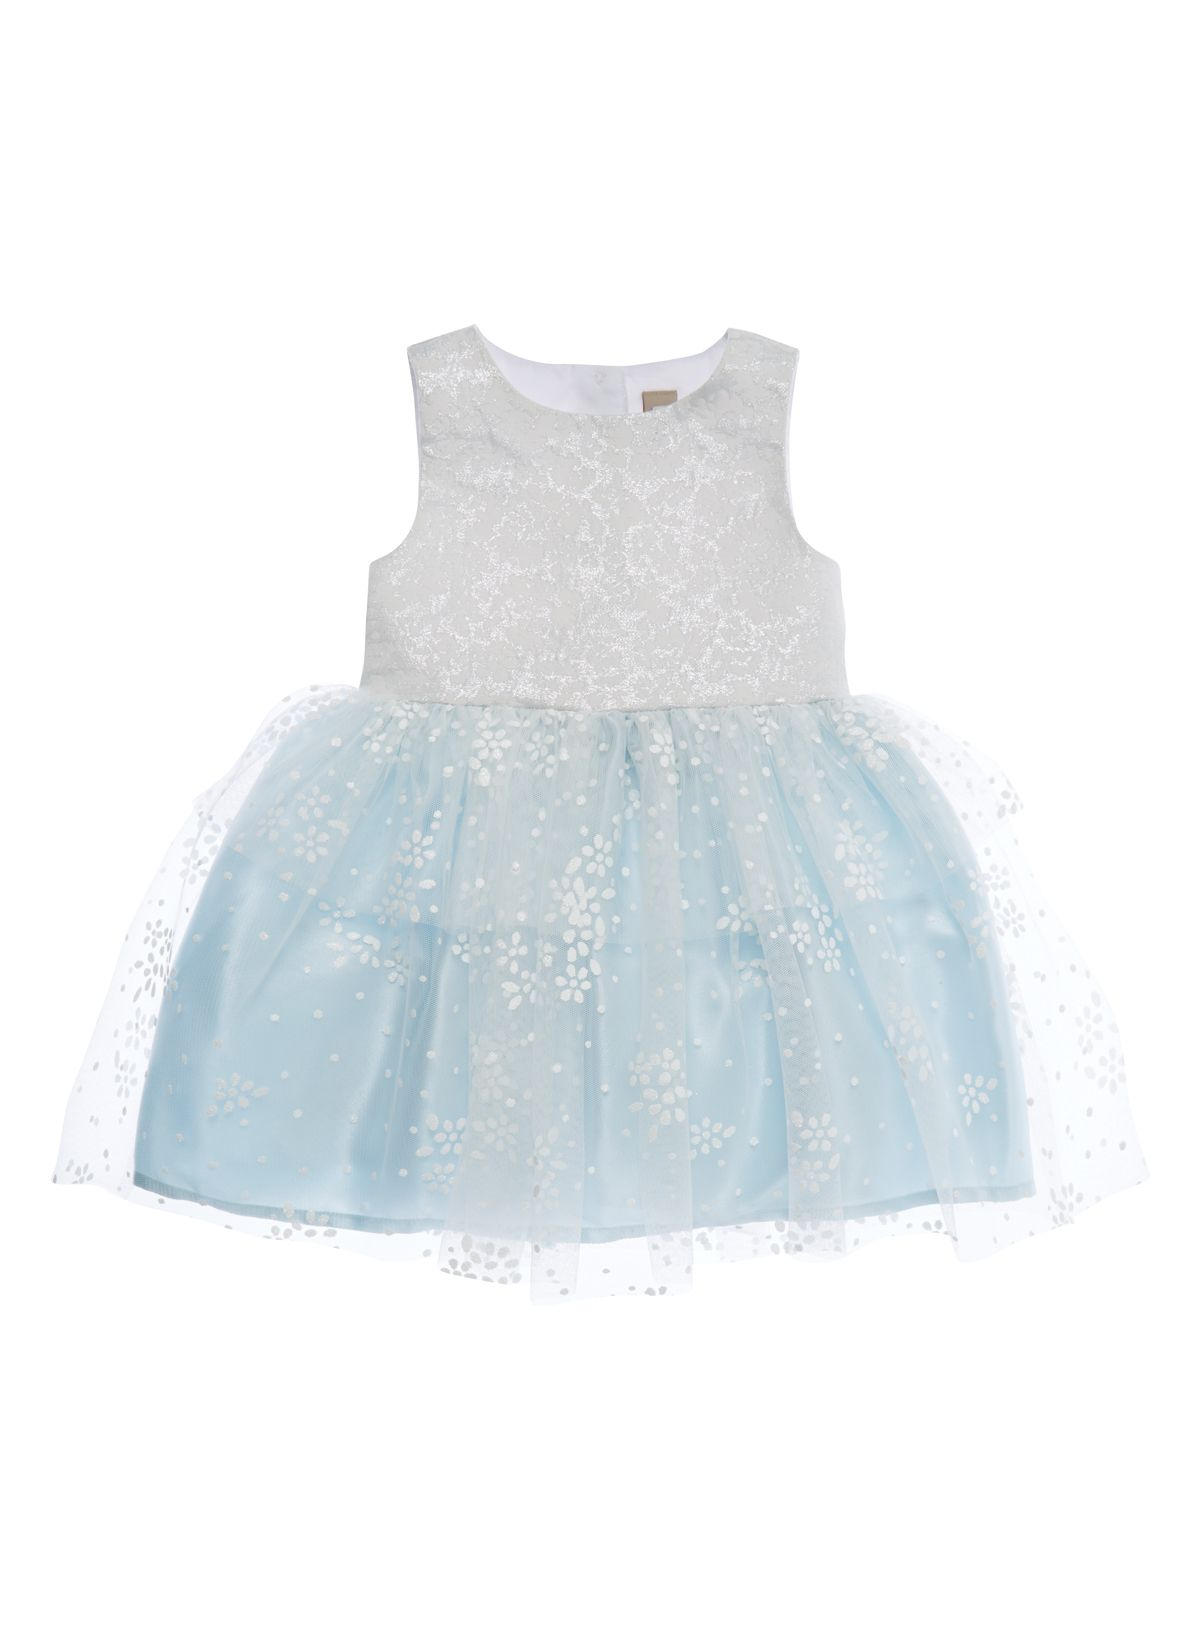 Girls Girls Blue and Silver Sparkle Netted Dress (9 months-5 years) | Tu clothing